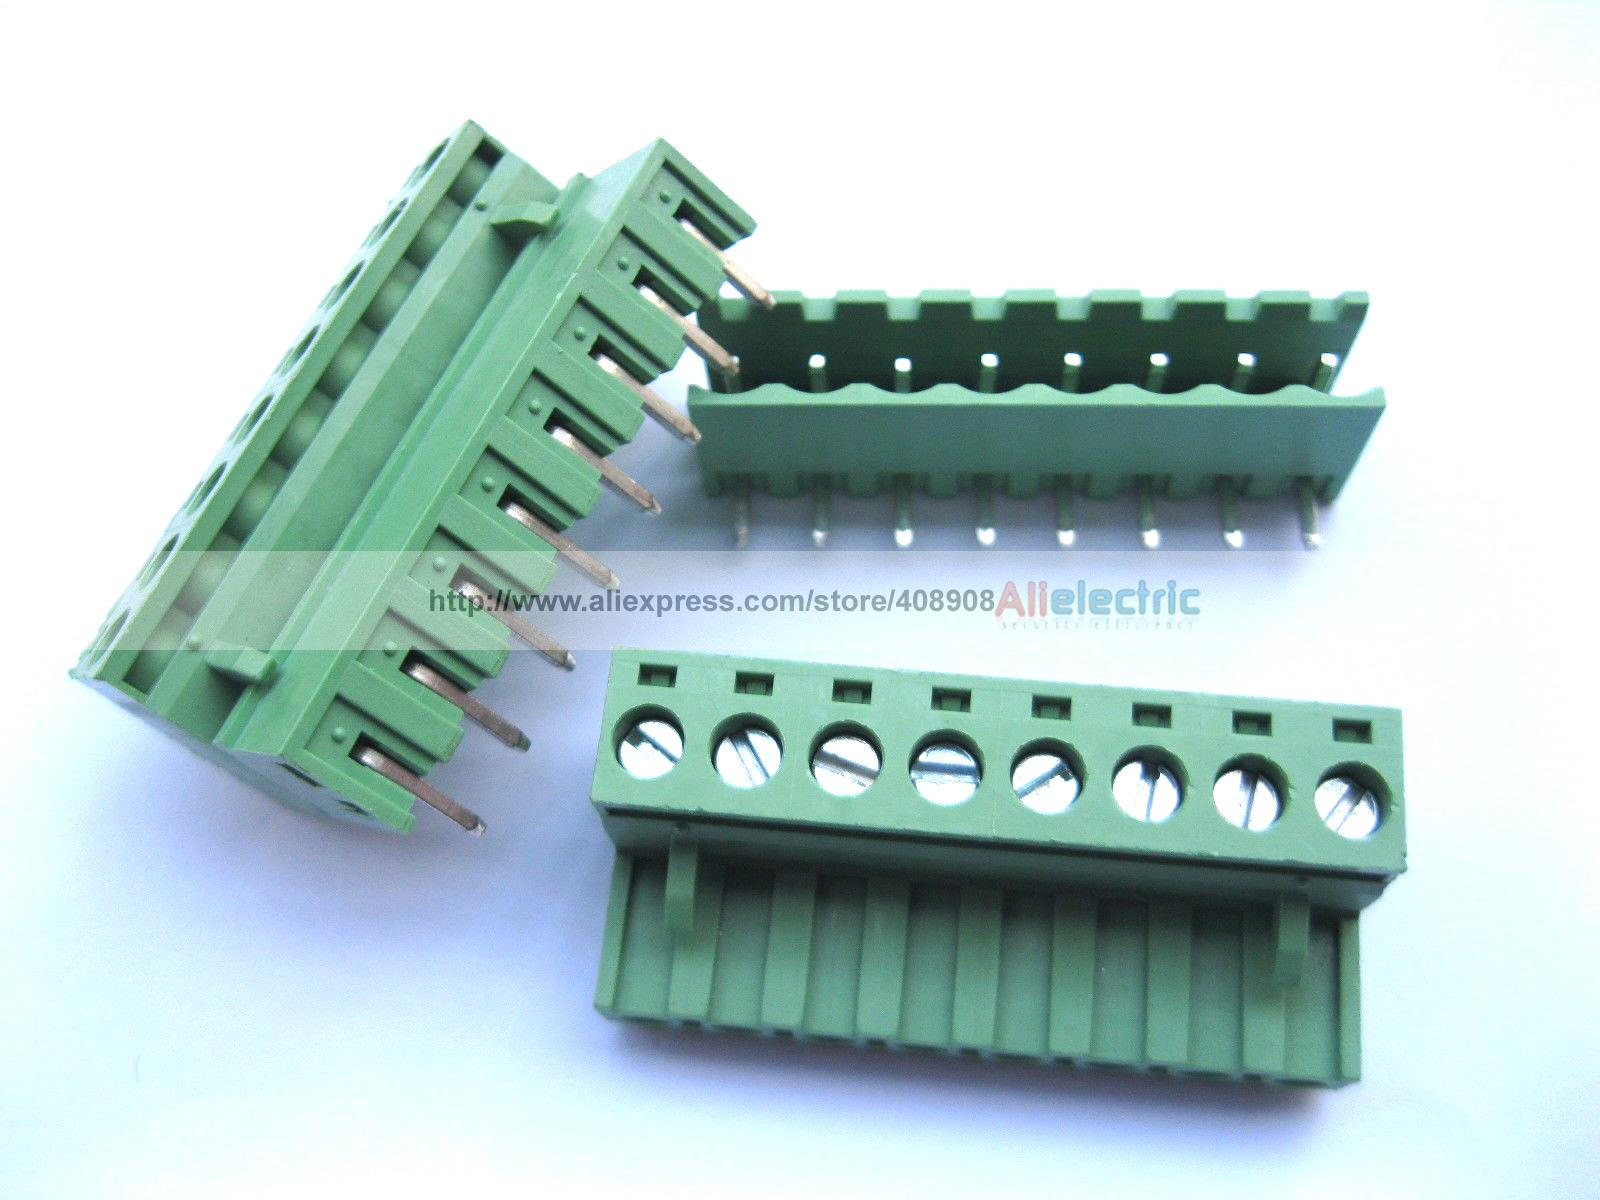 цена на 50 Pcs 5.08mm Angle 8 Pin Screw Terminal Block Connector Pluggable Type Green